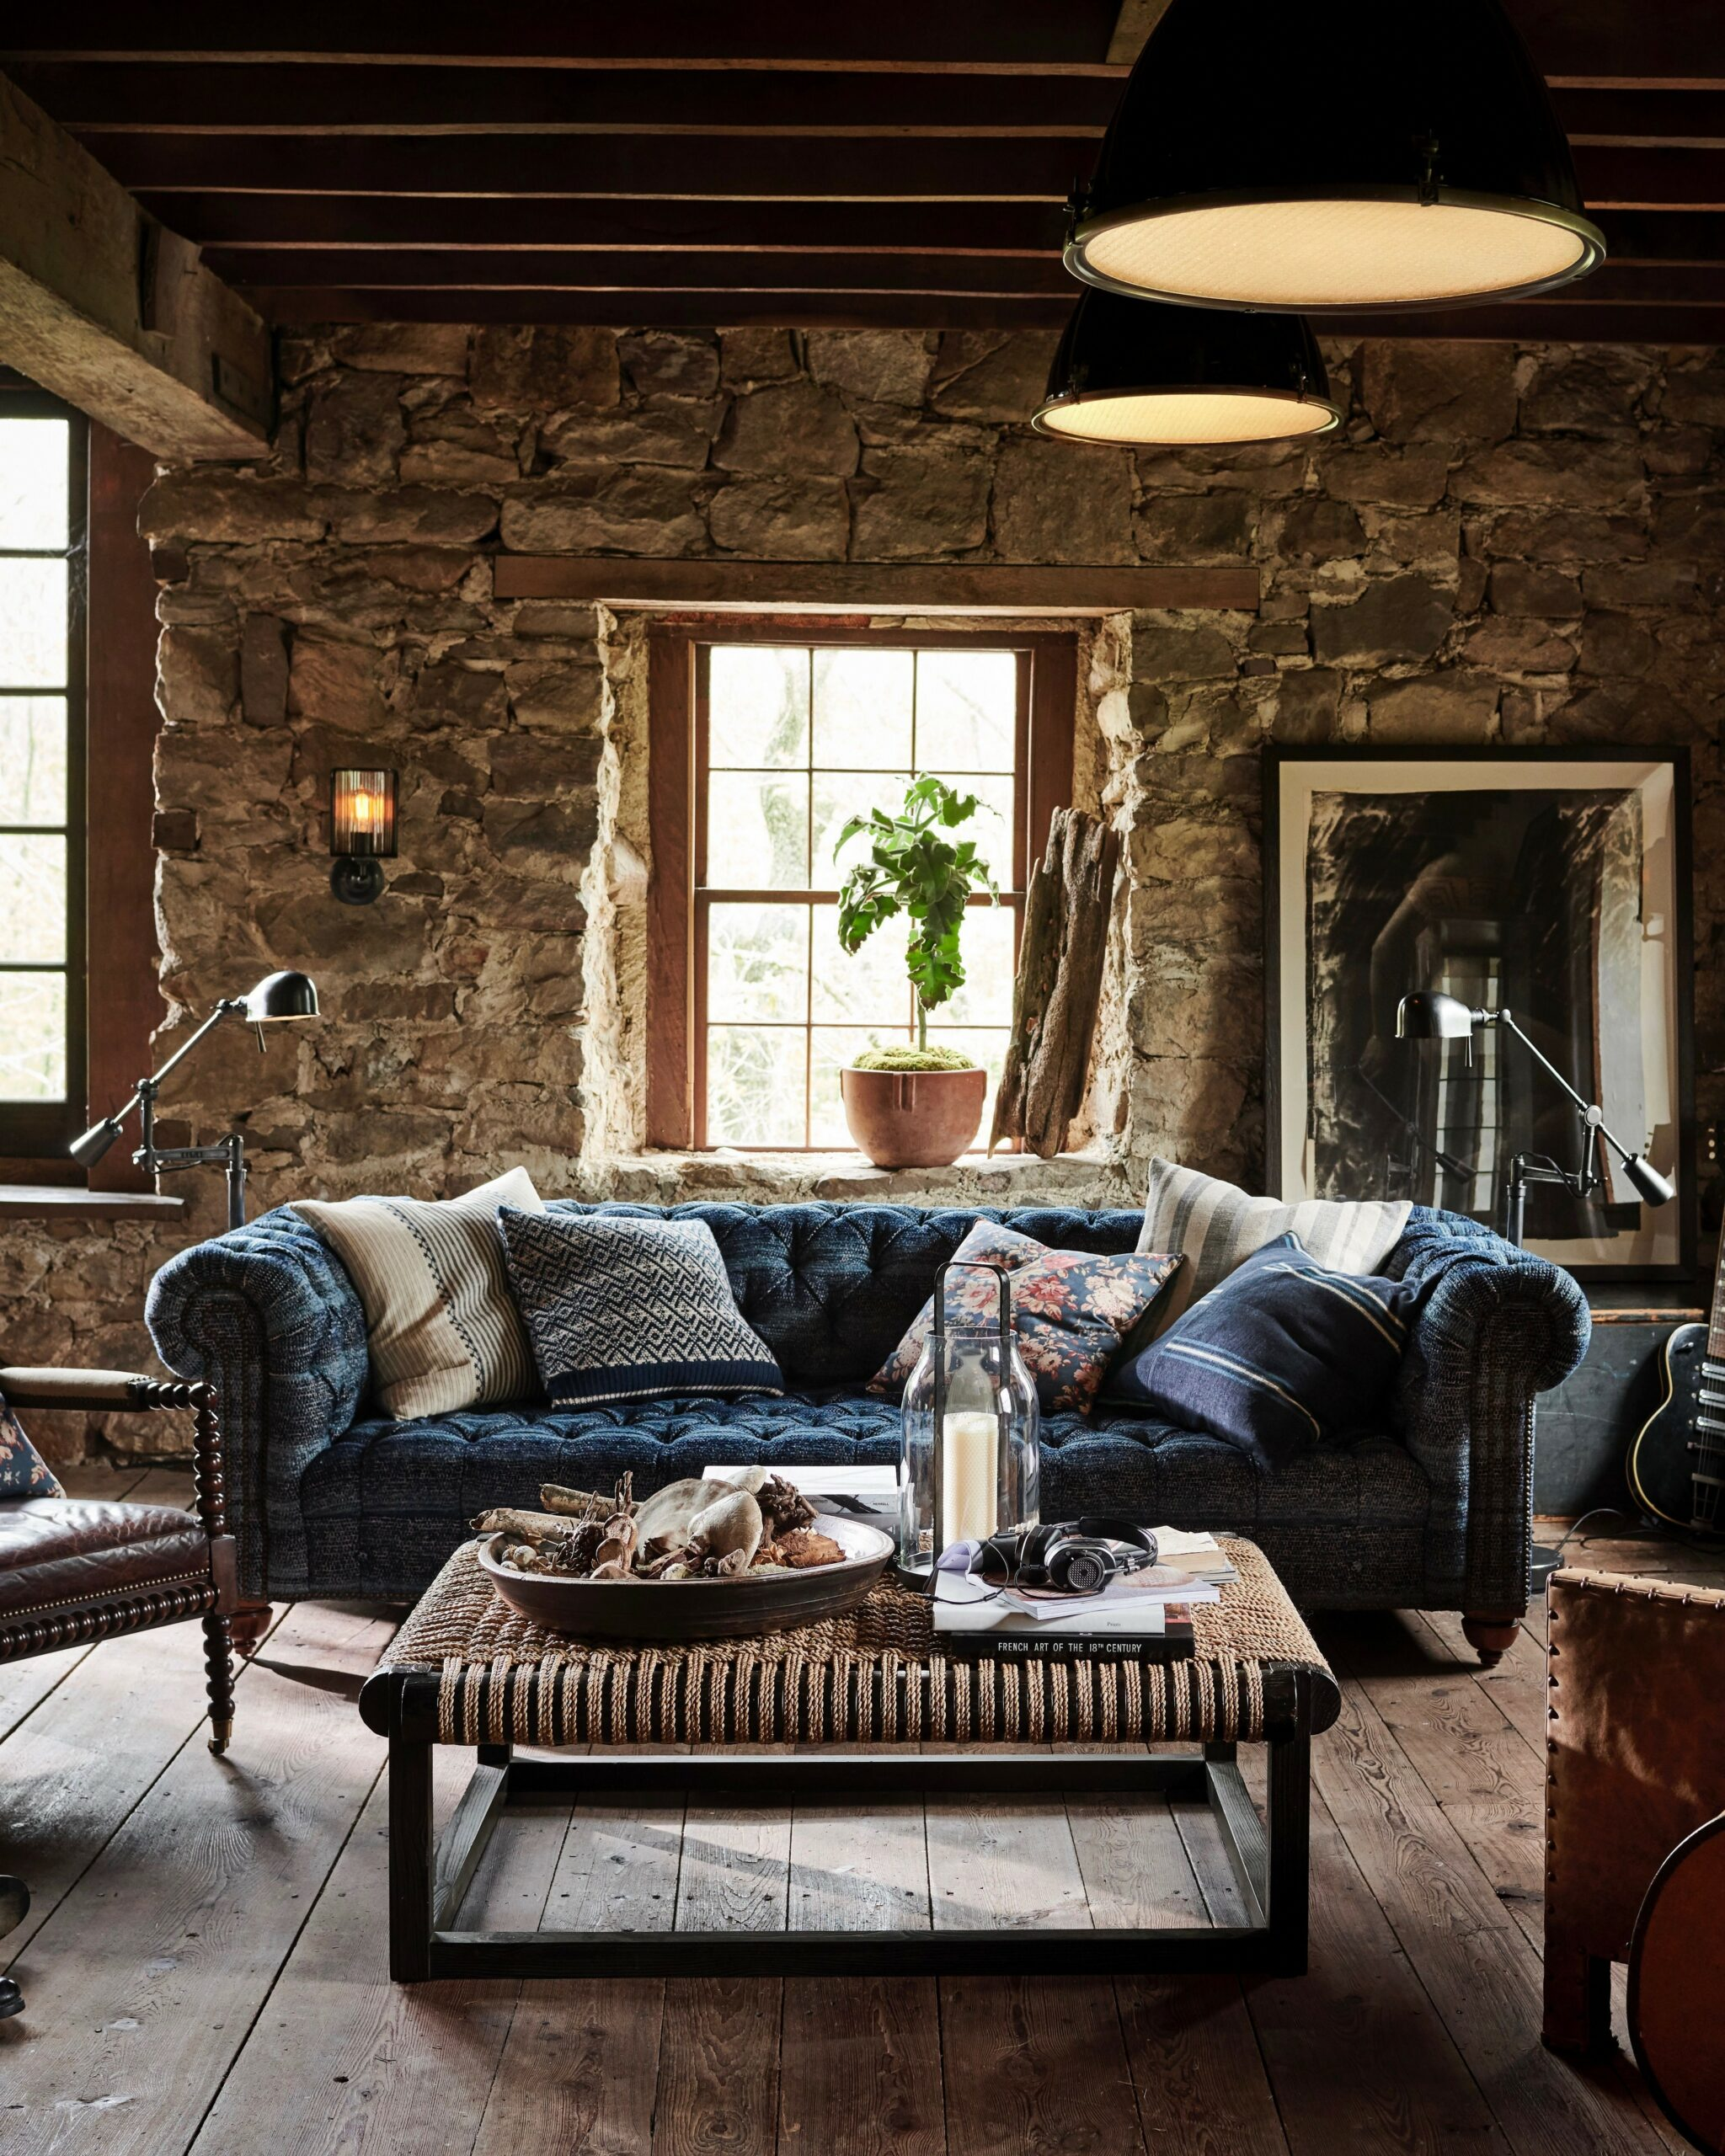 67 Rustic Home Decorating Ideas In 2020 Home Decor 5